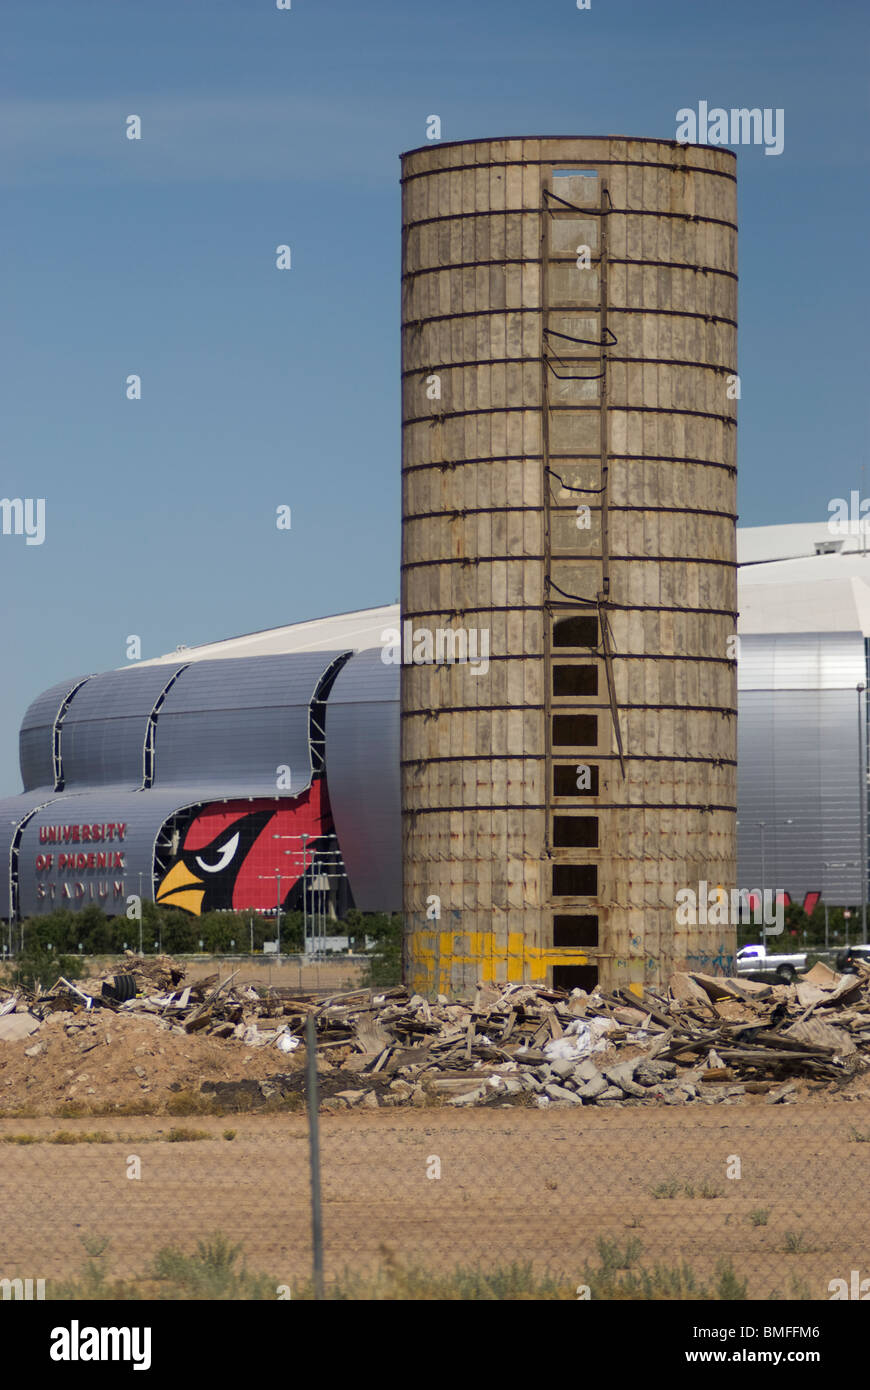 The University of Phoenix Stadium (Arizona Cardinals Stadium) in Glendale, Arizona, USA.  Shown from across a neighboring - Stock Image